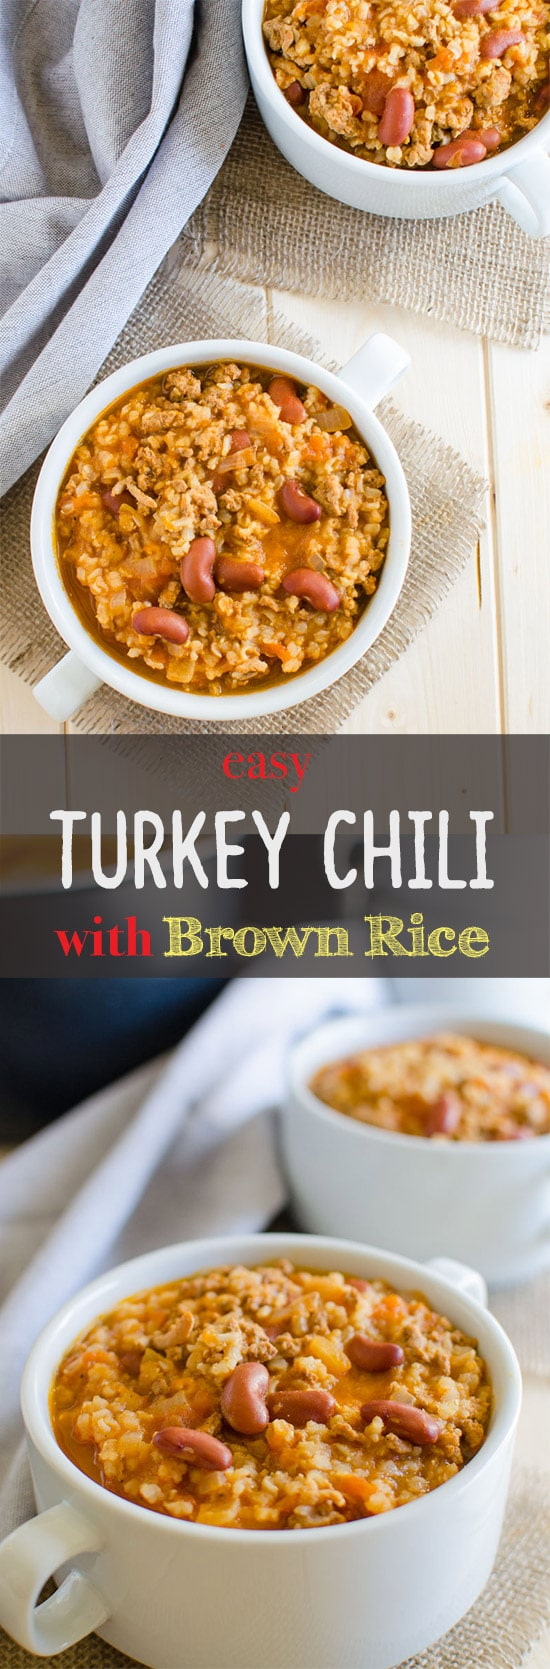 This easy turkey chili with brown rice is simple to prepare, healthy and a one pot meal. It is prepared using all healthy ingredients. Full of all traditional flavors.